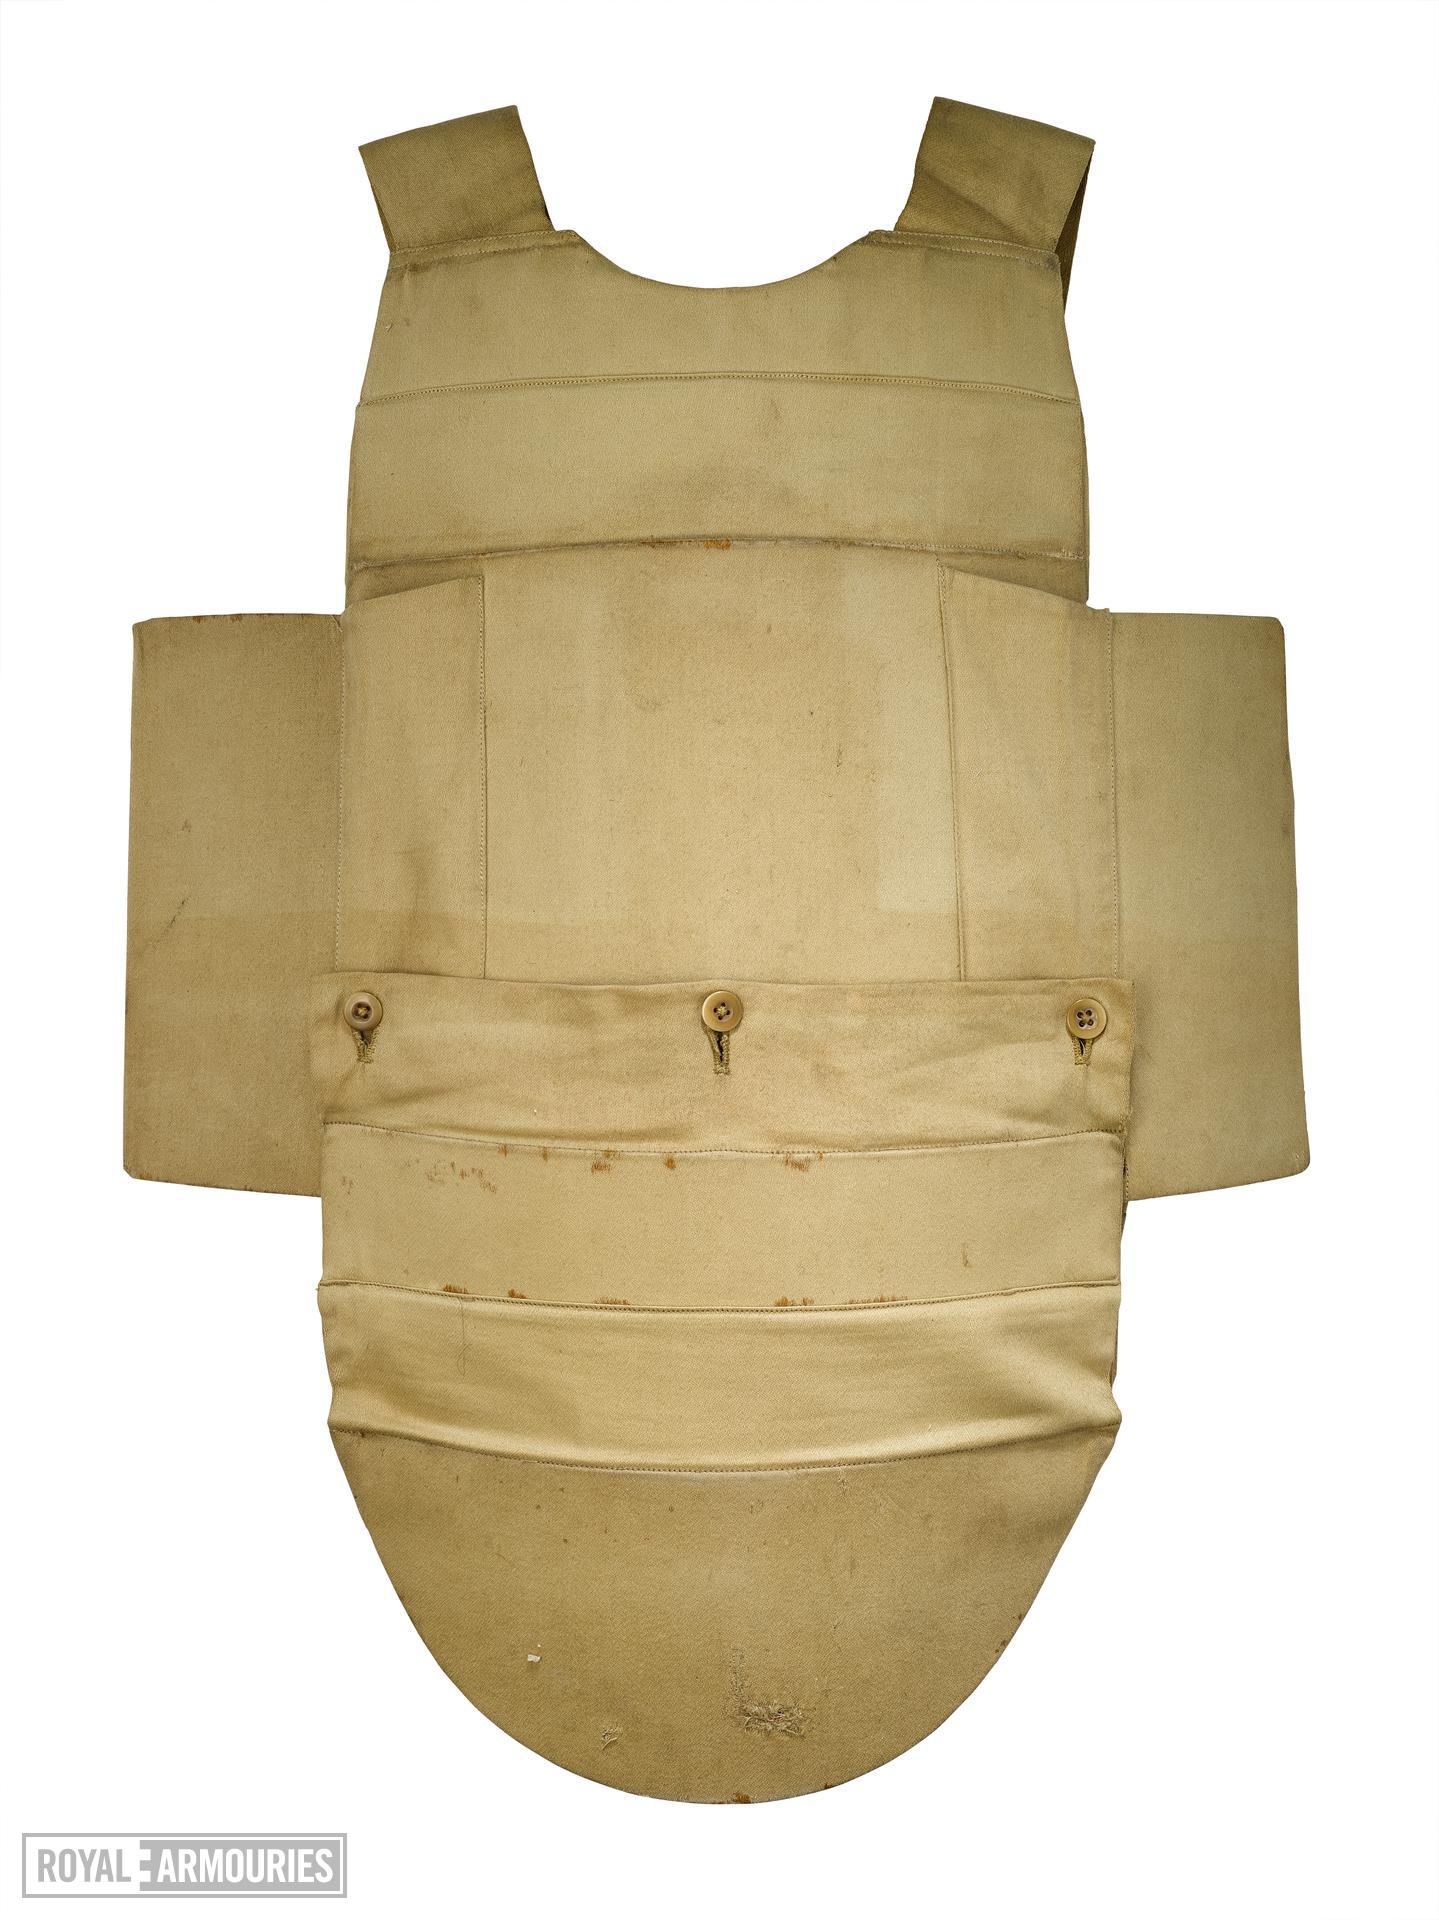 Body Armour - British Expeditionary Force (BEF) body armour